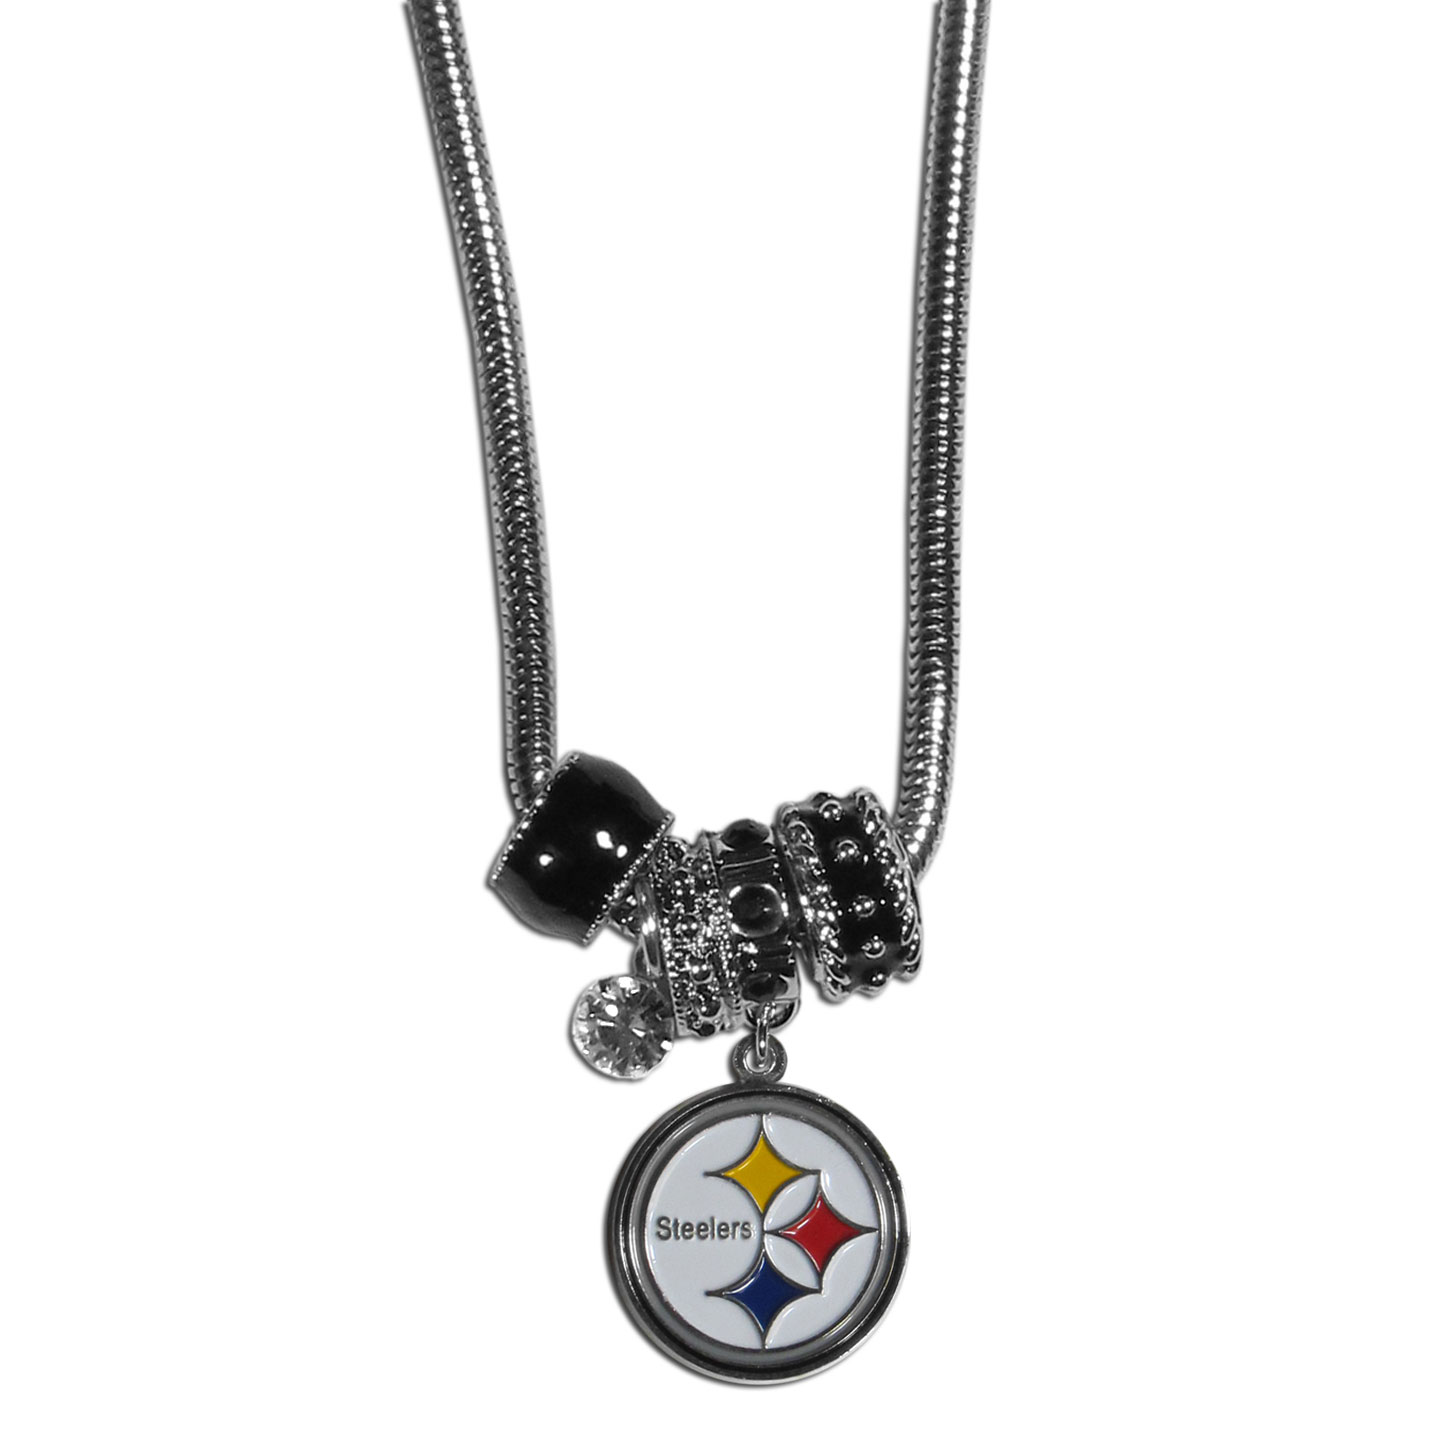 Pittsburgh Steelers Euro Bead Necklace - We have combined the wildly popular Euro style beads with your favorite team to create our Pittsburgh Steelers bead necklace. The 18 inch snake chain features 4 Euro beads with enameled team colors and rhinestone accents with a high polish, nickel free charm and rhinestone charm. Perfect way to show off your team pride.